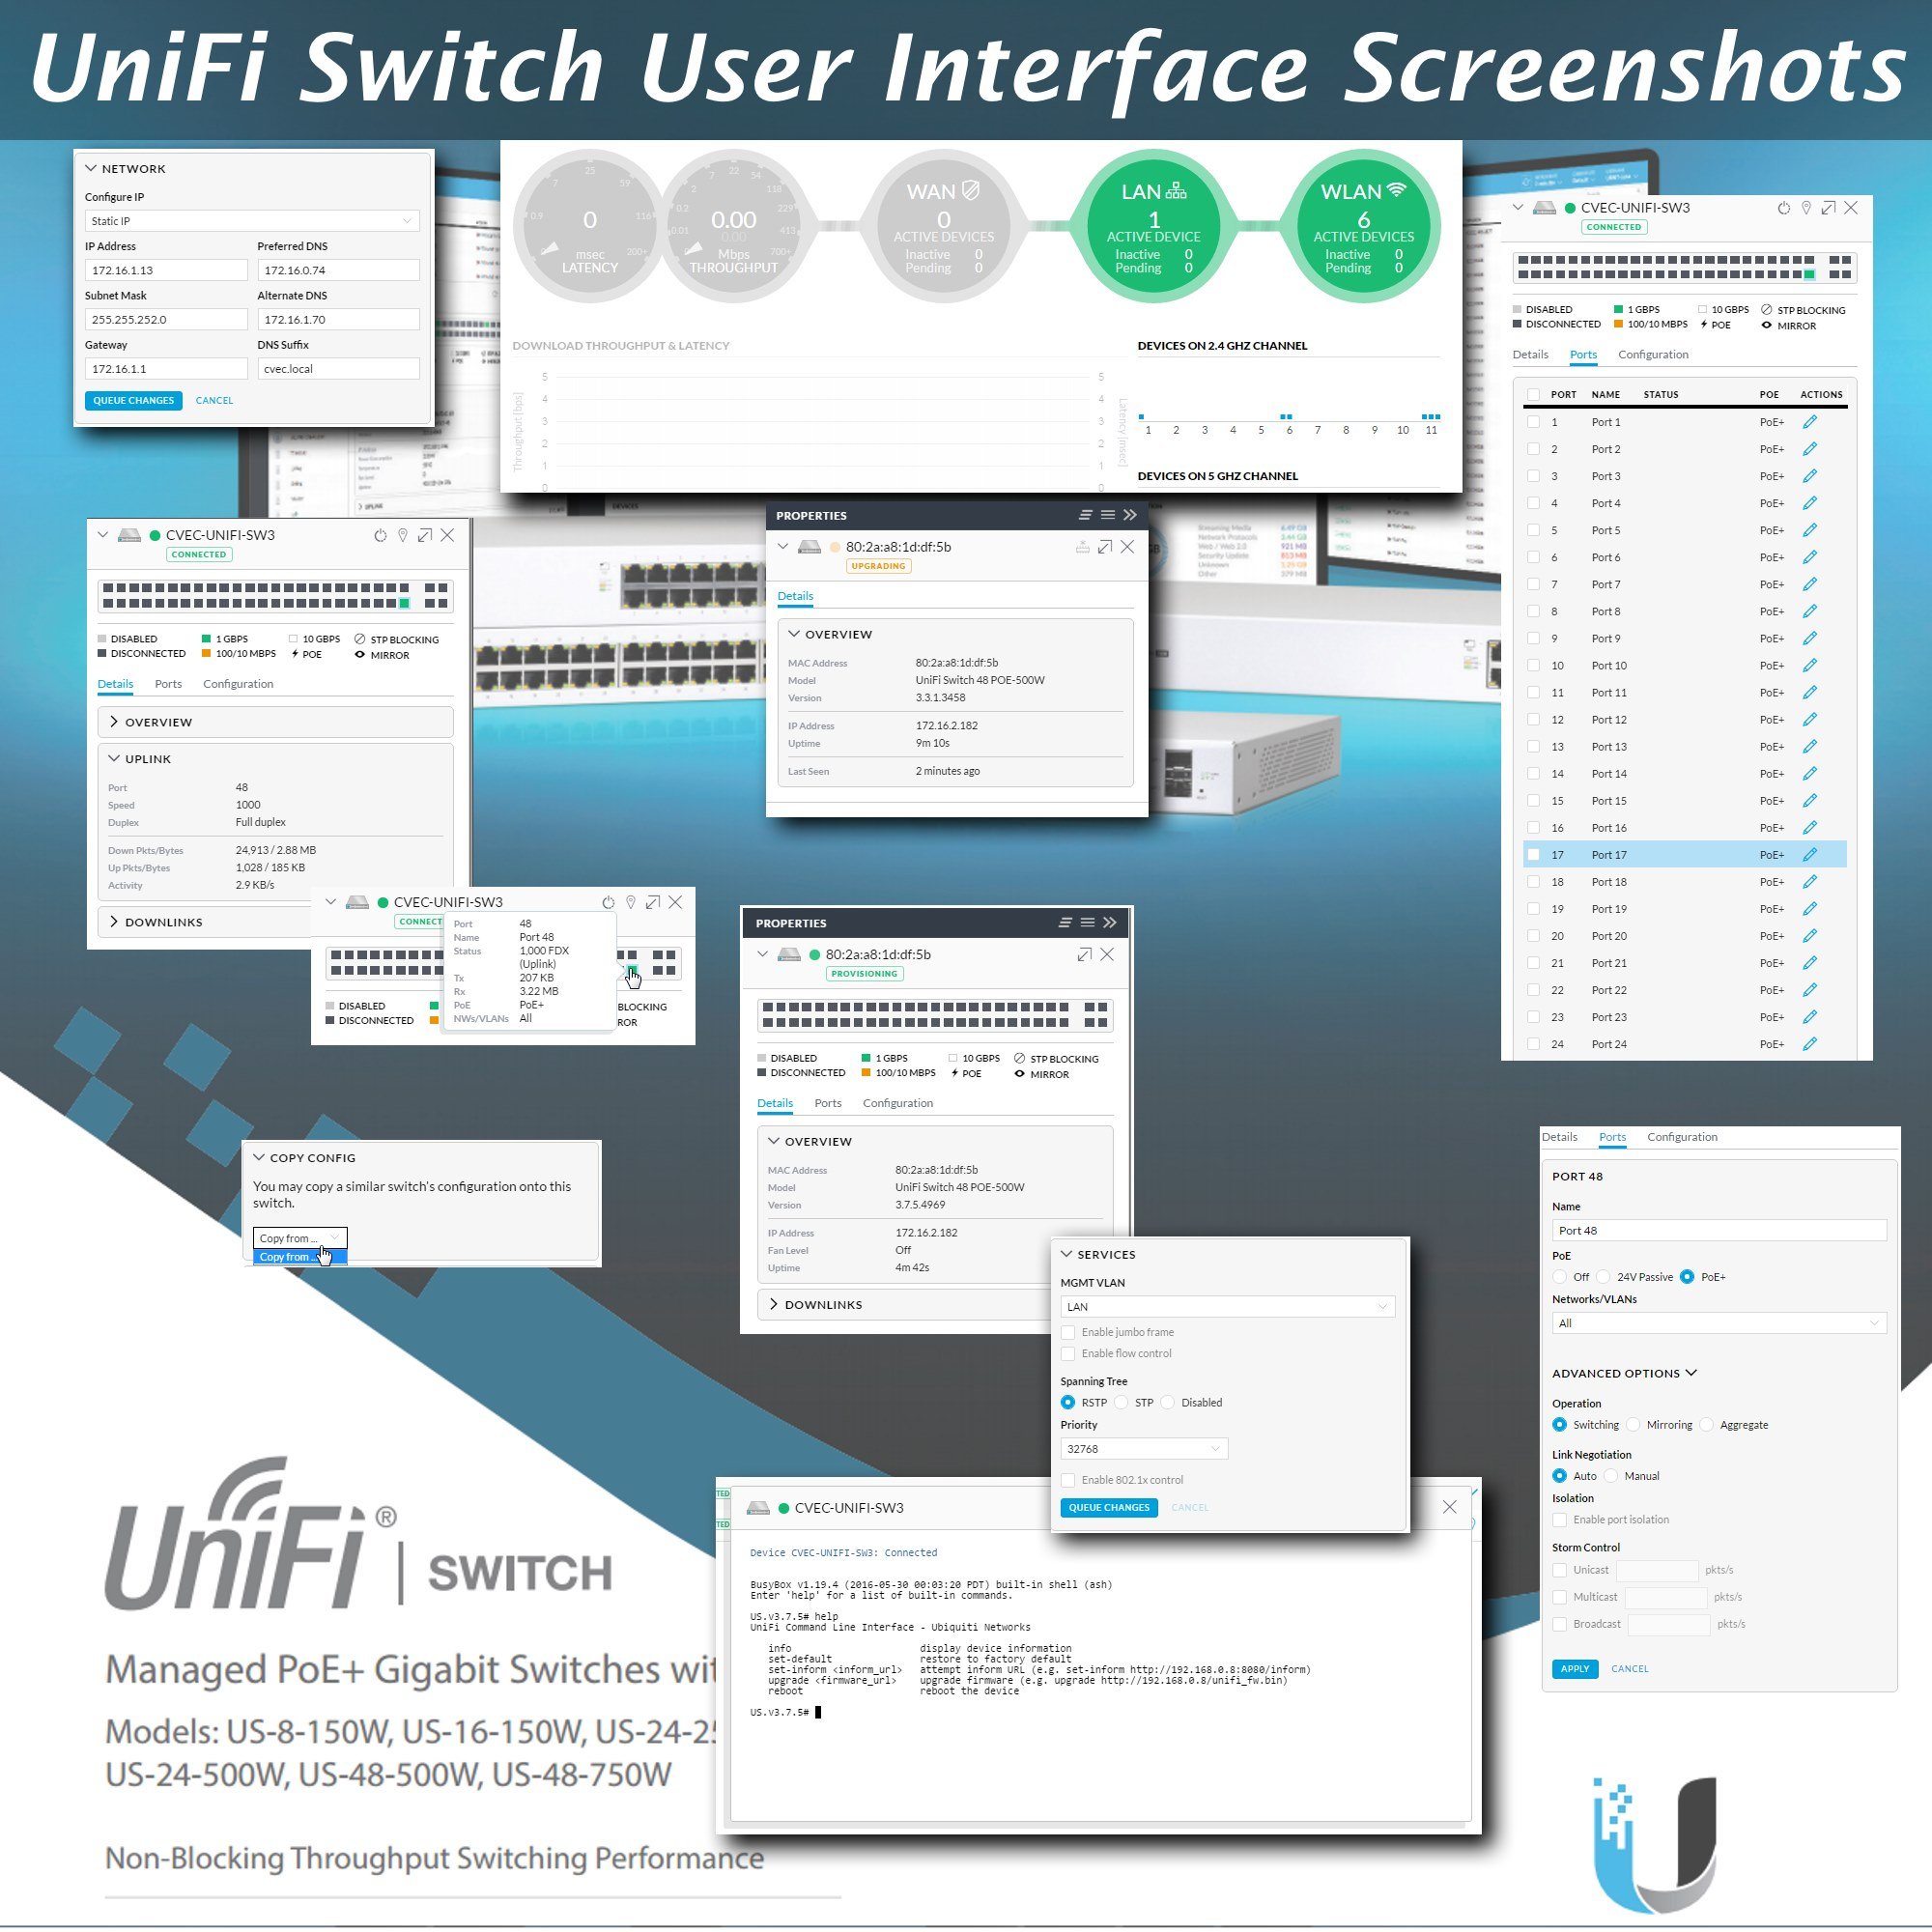 unifi-switch-user-interface-screenshots